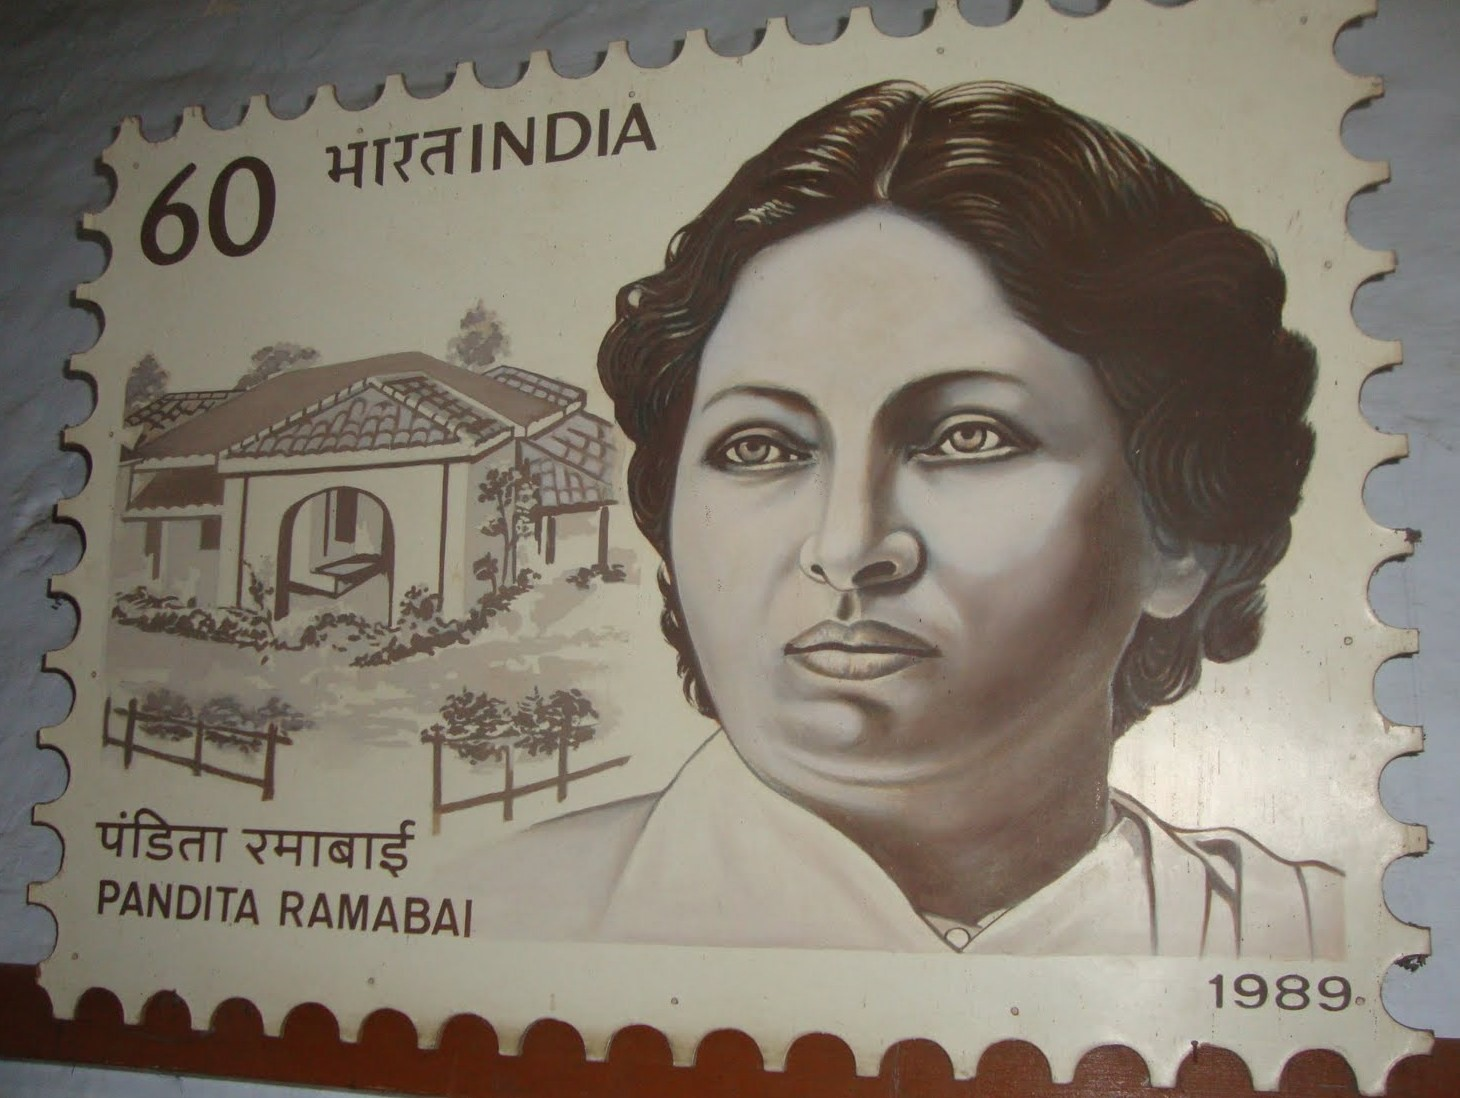 Pandita Ramabai: Championing Women's Education And Social Reform